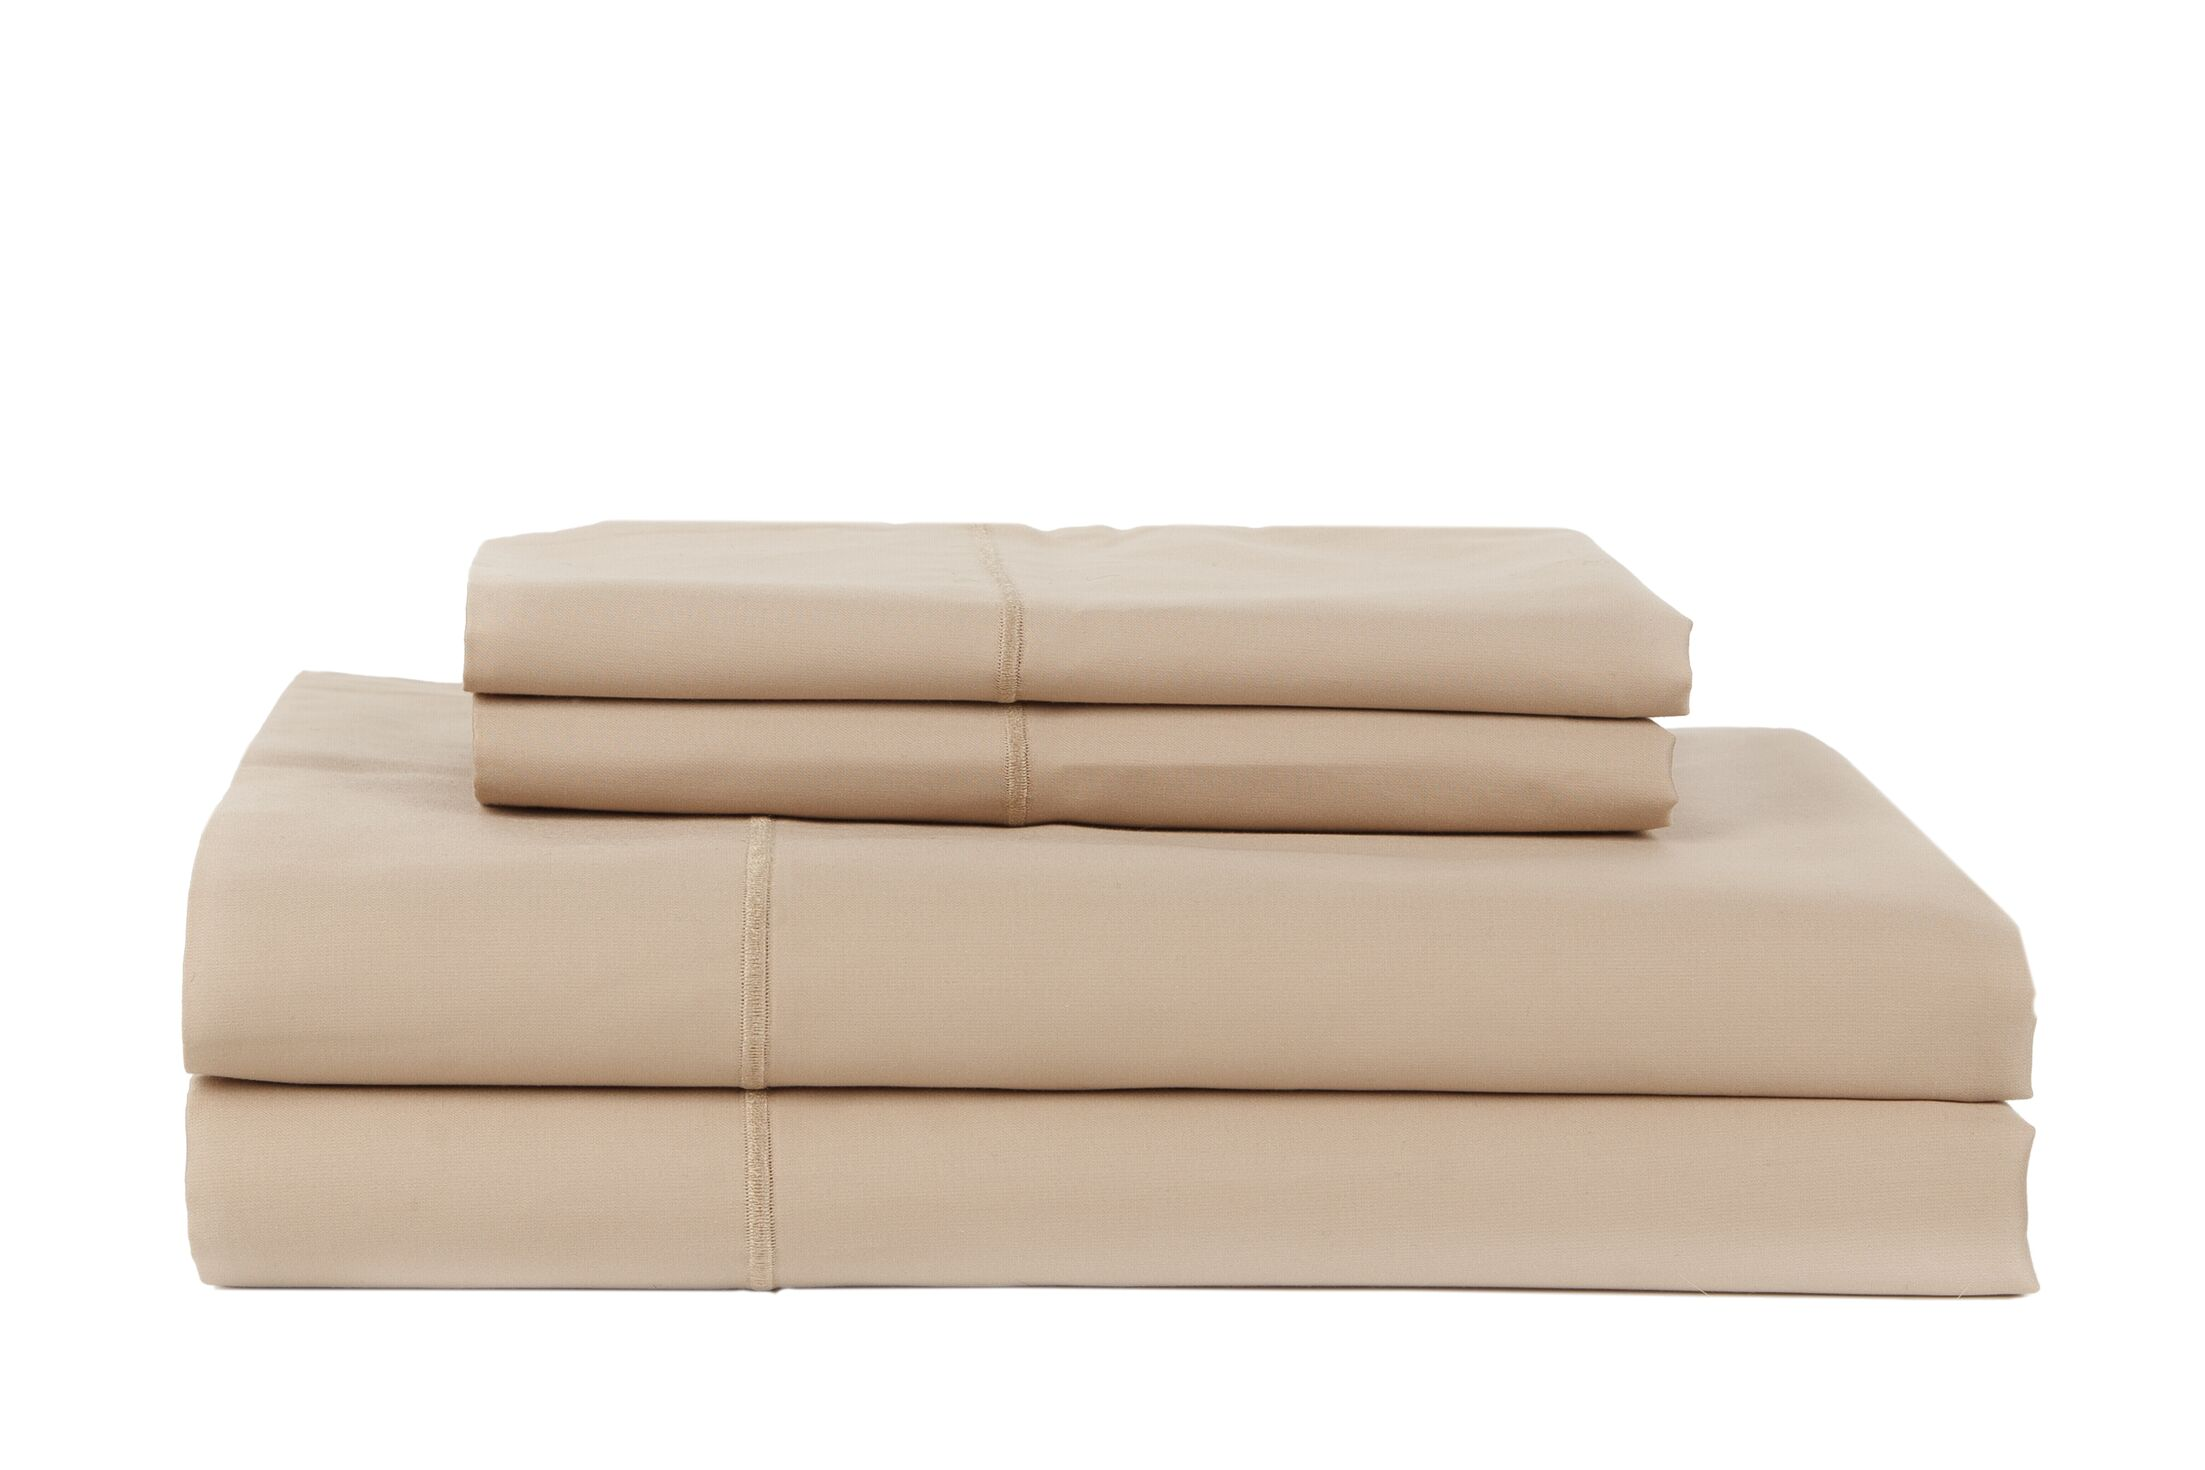 Devonshire of Nottingham 650 Thread Count Egyptian Quality Cotton Sheet Set Color: Taupe, Size: Queen